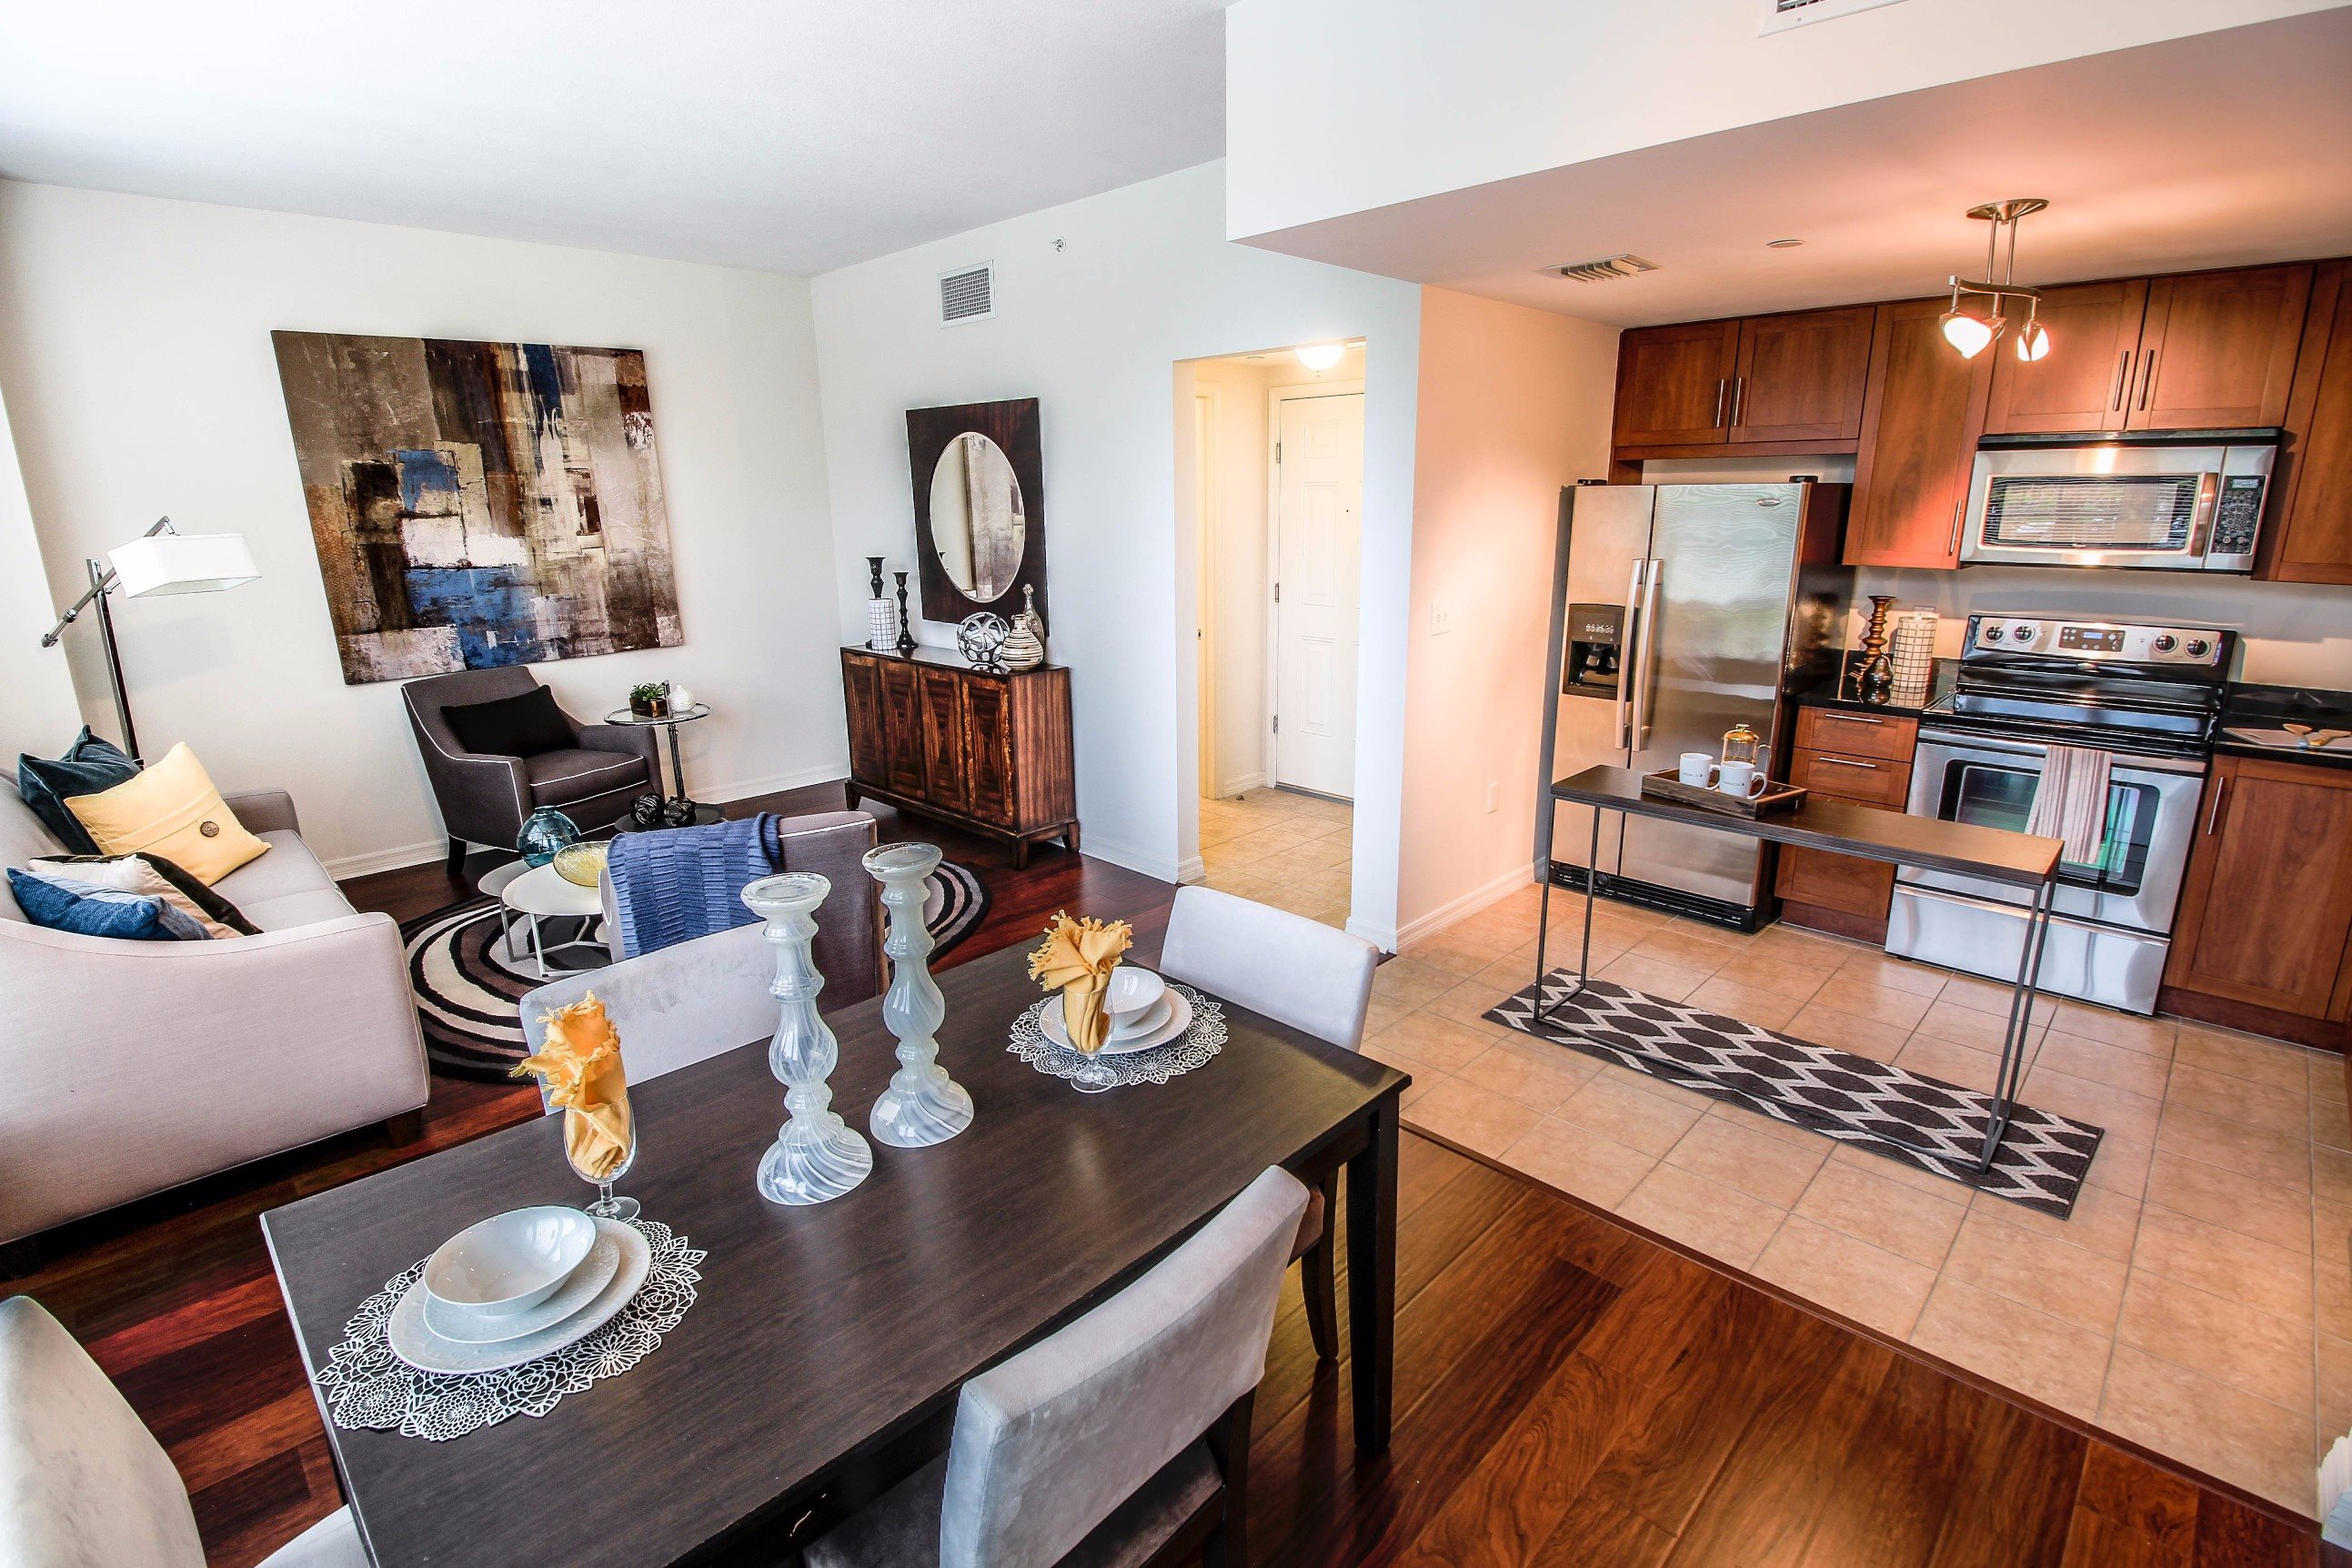 Midtown 24 Fully Equipped Kitchen and Dining Room